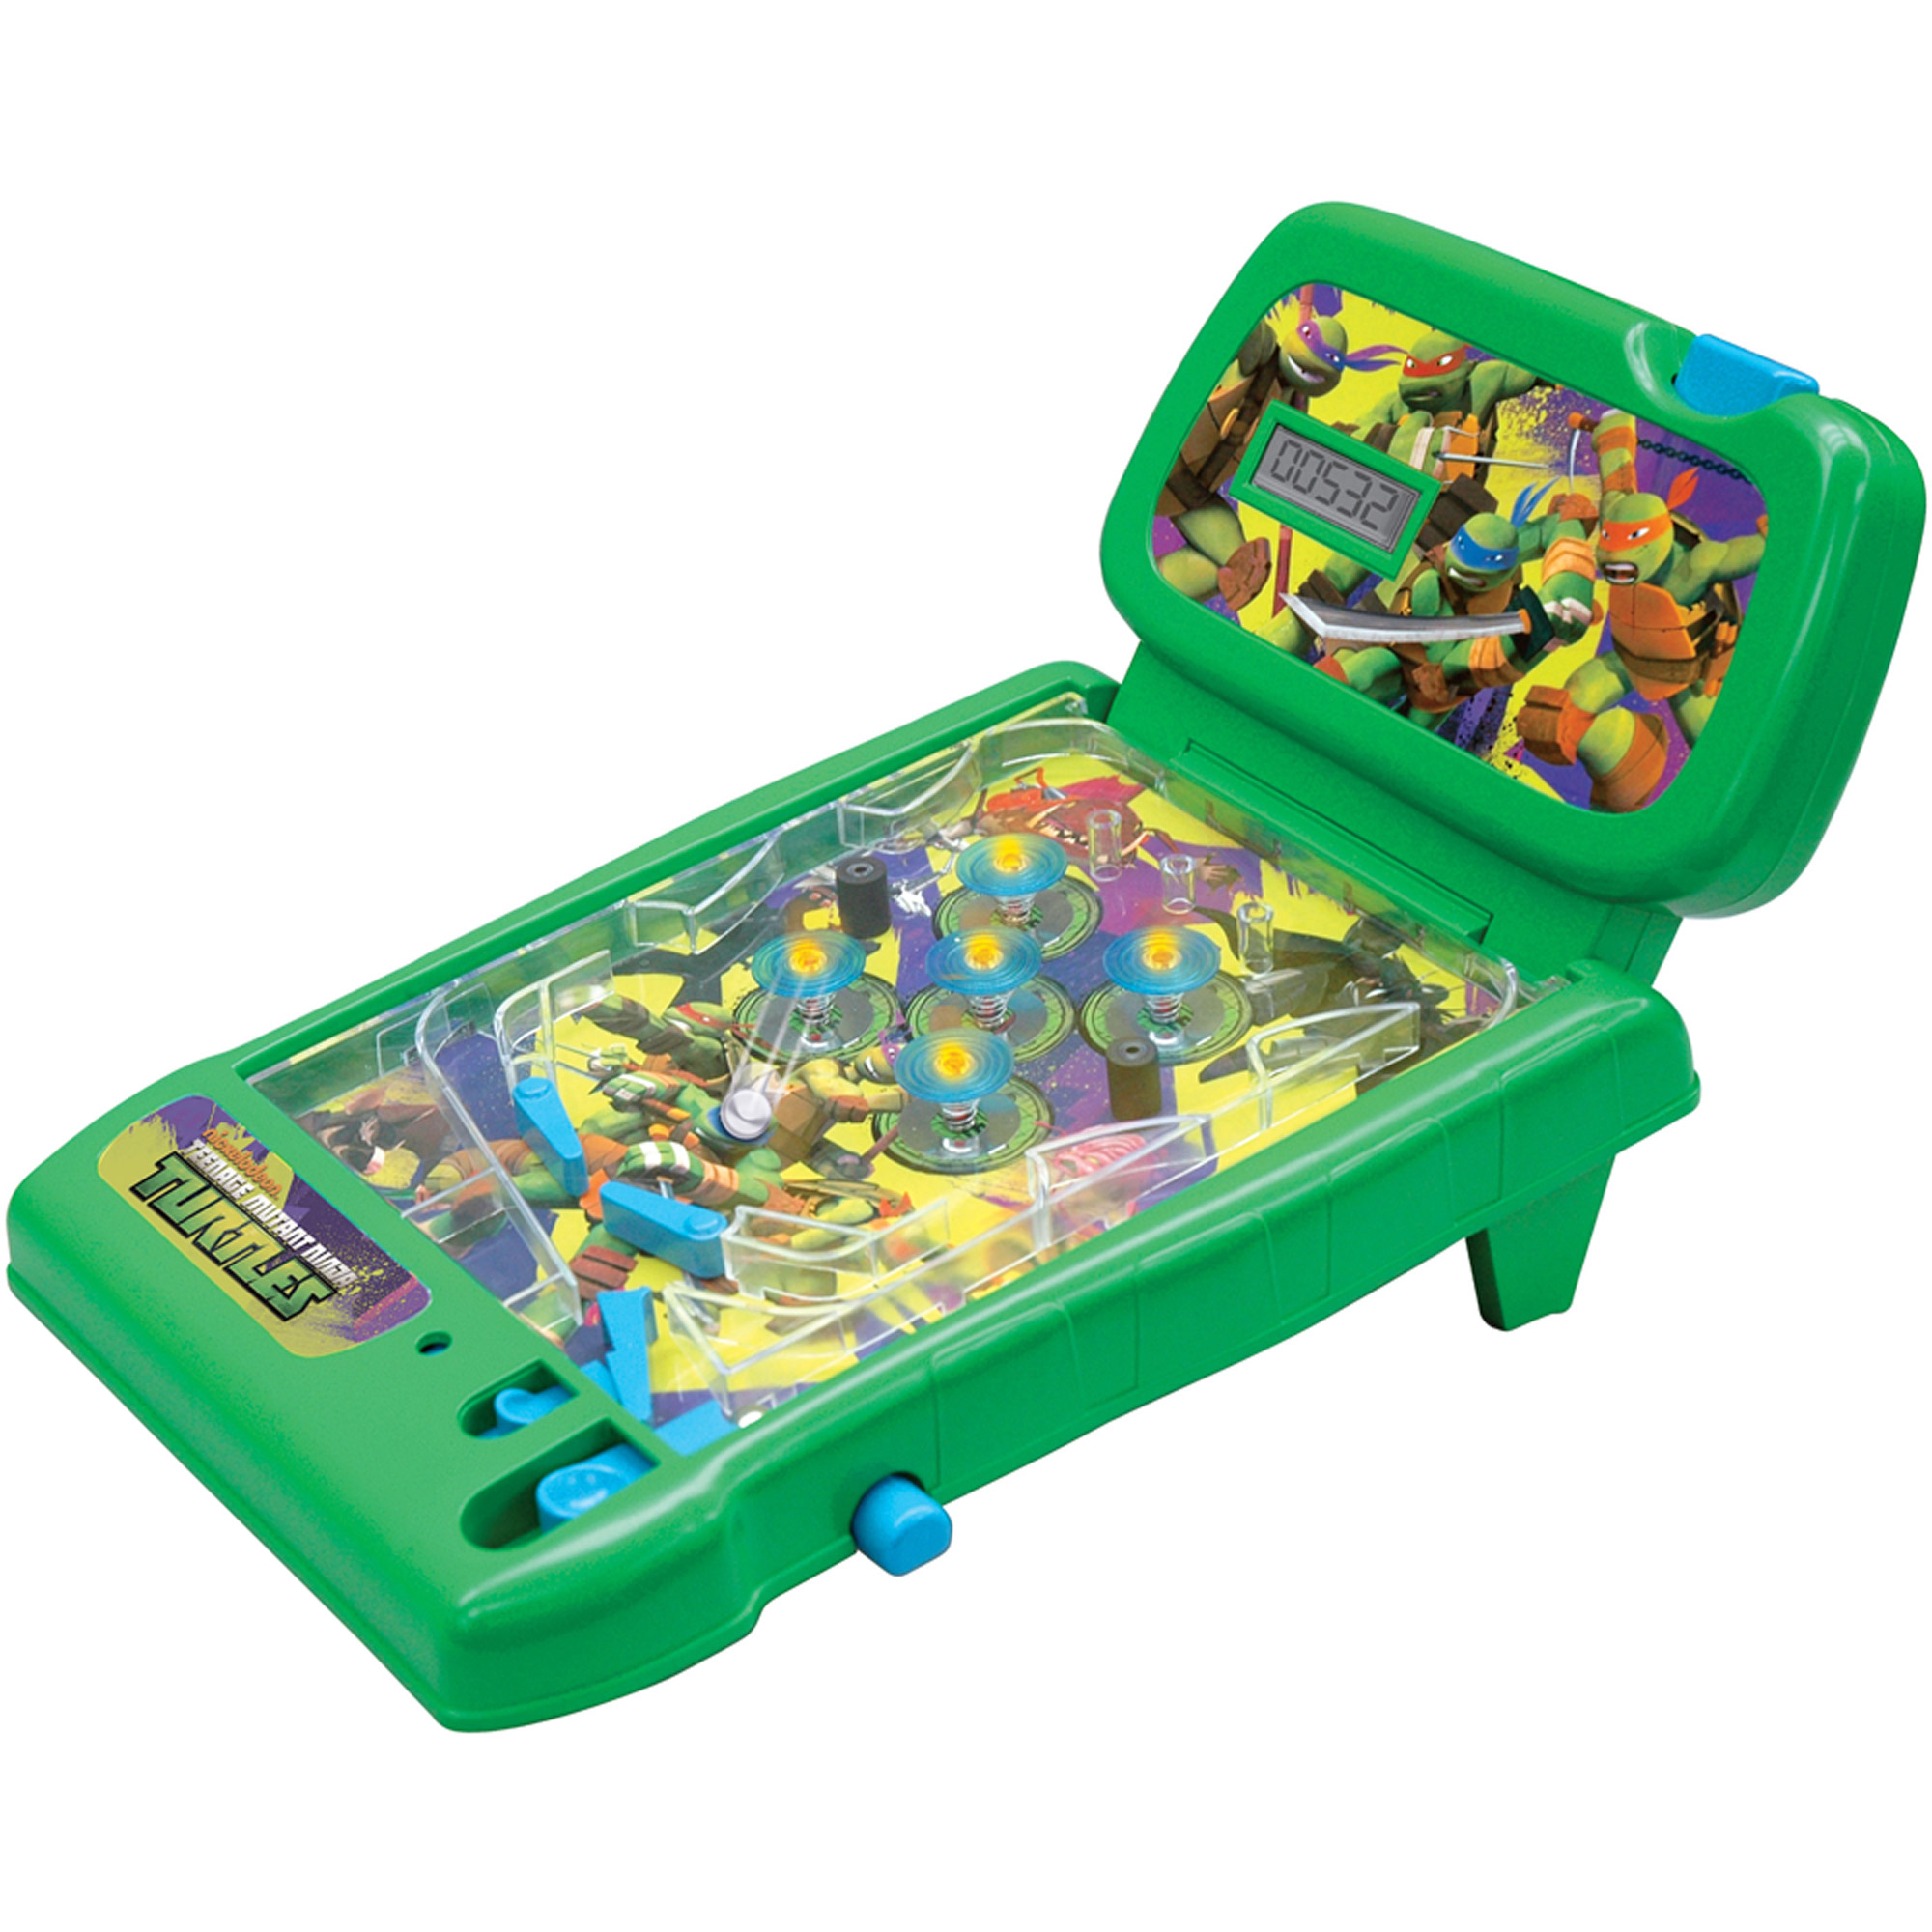 Teenage Mutant Ninja Turtles Totally Turtles Tabletop Pinball Game